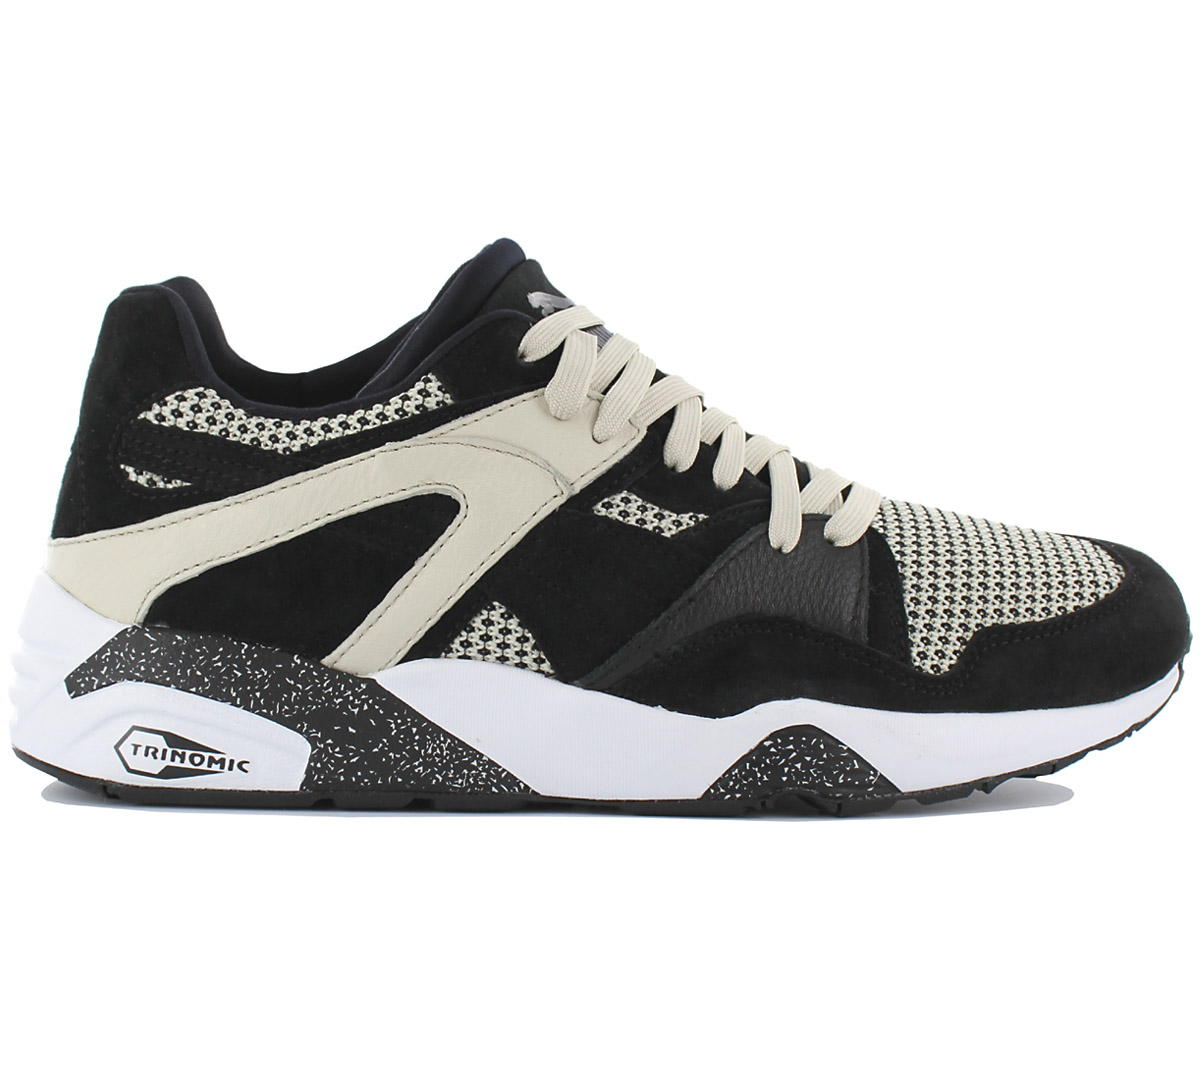 d1757351e96ae9 Puma Trinomic Blaze Tech Mesh V2 Shoes Men s Sneakers Gym Shoe New ...